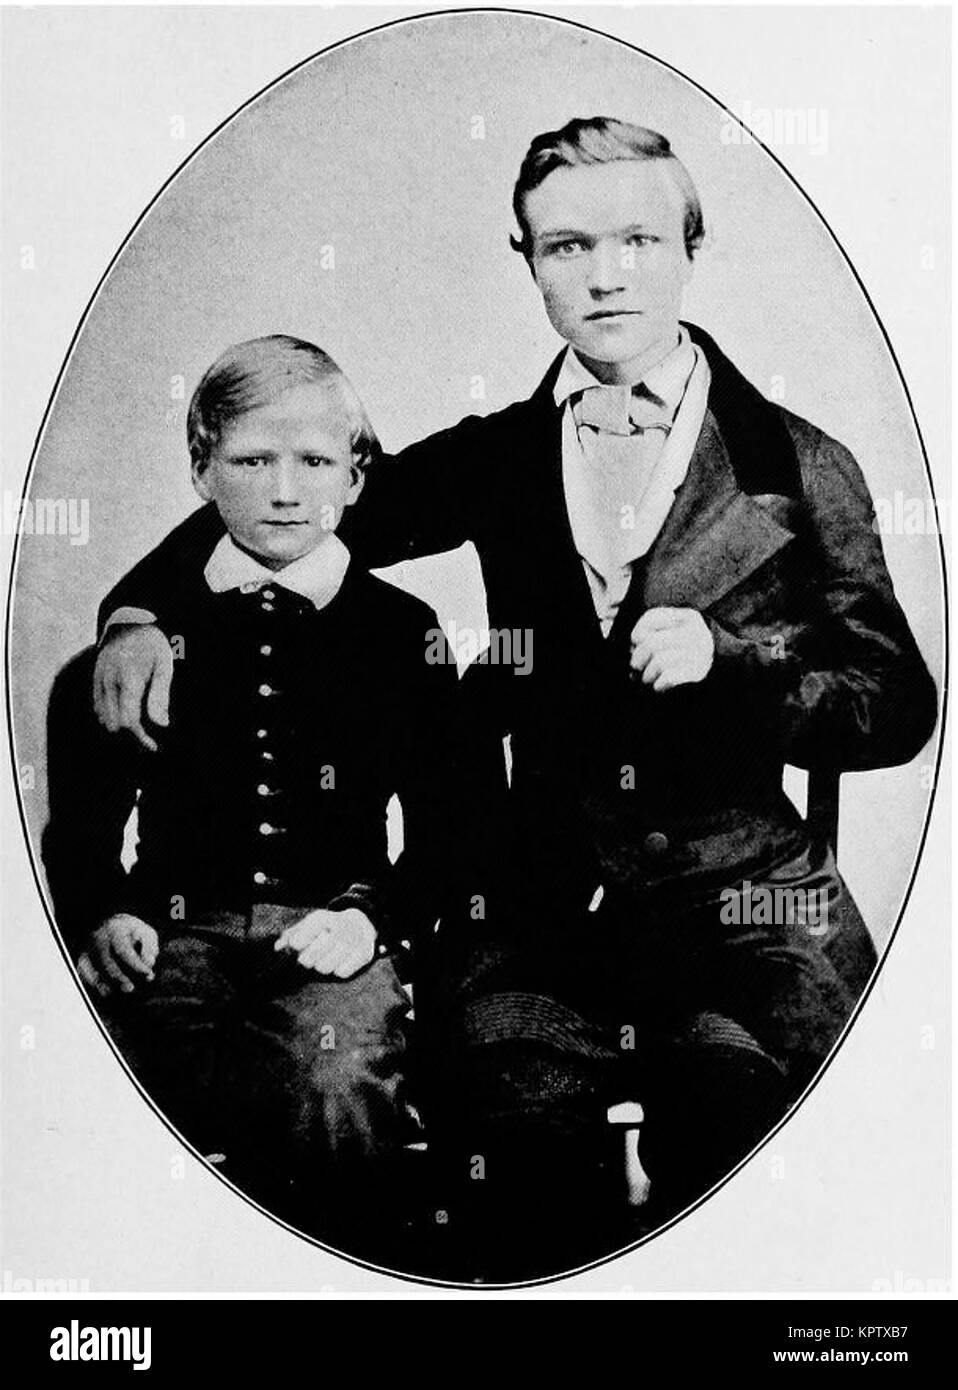 Andrew Carnegie age 16, with brother Thomas - Stock Image